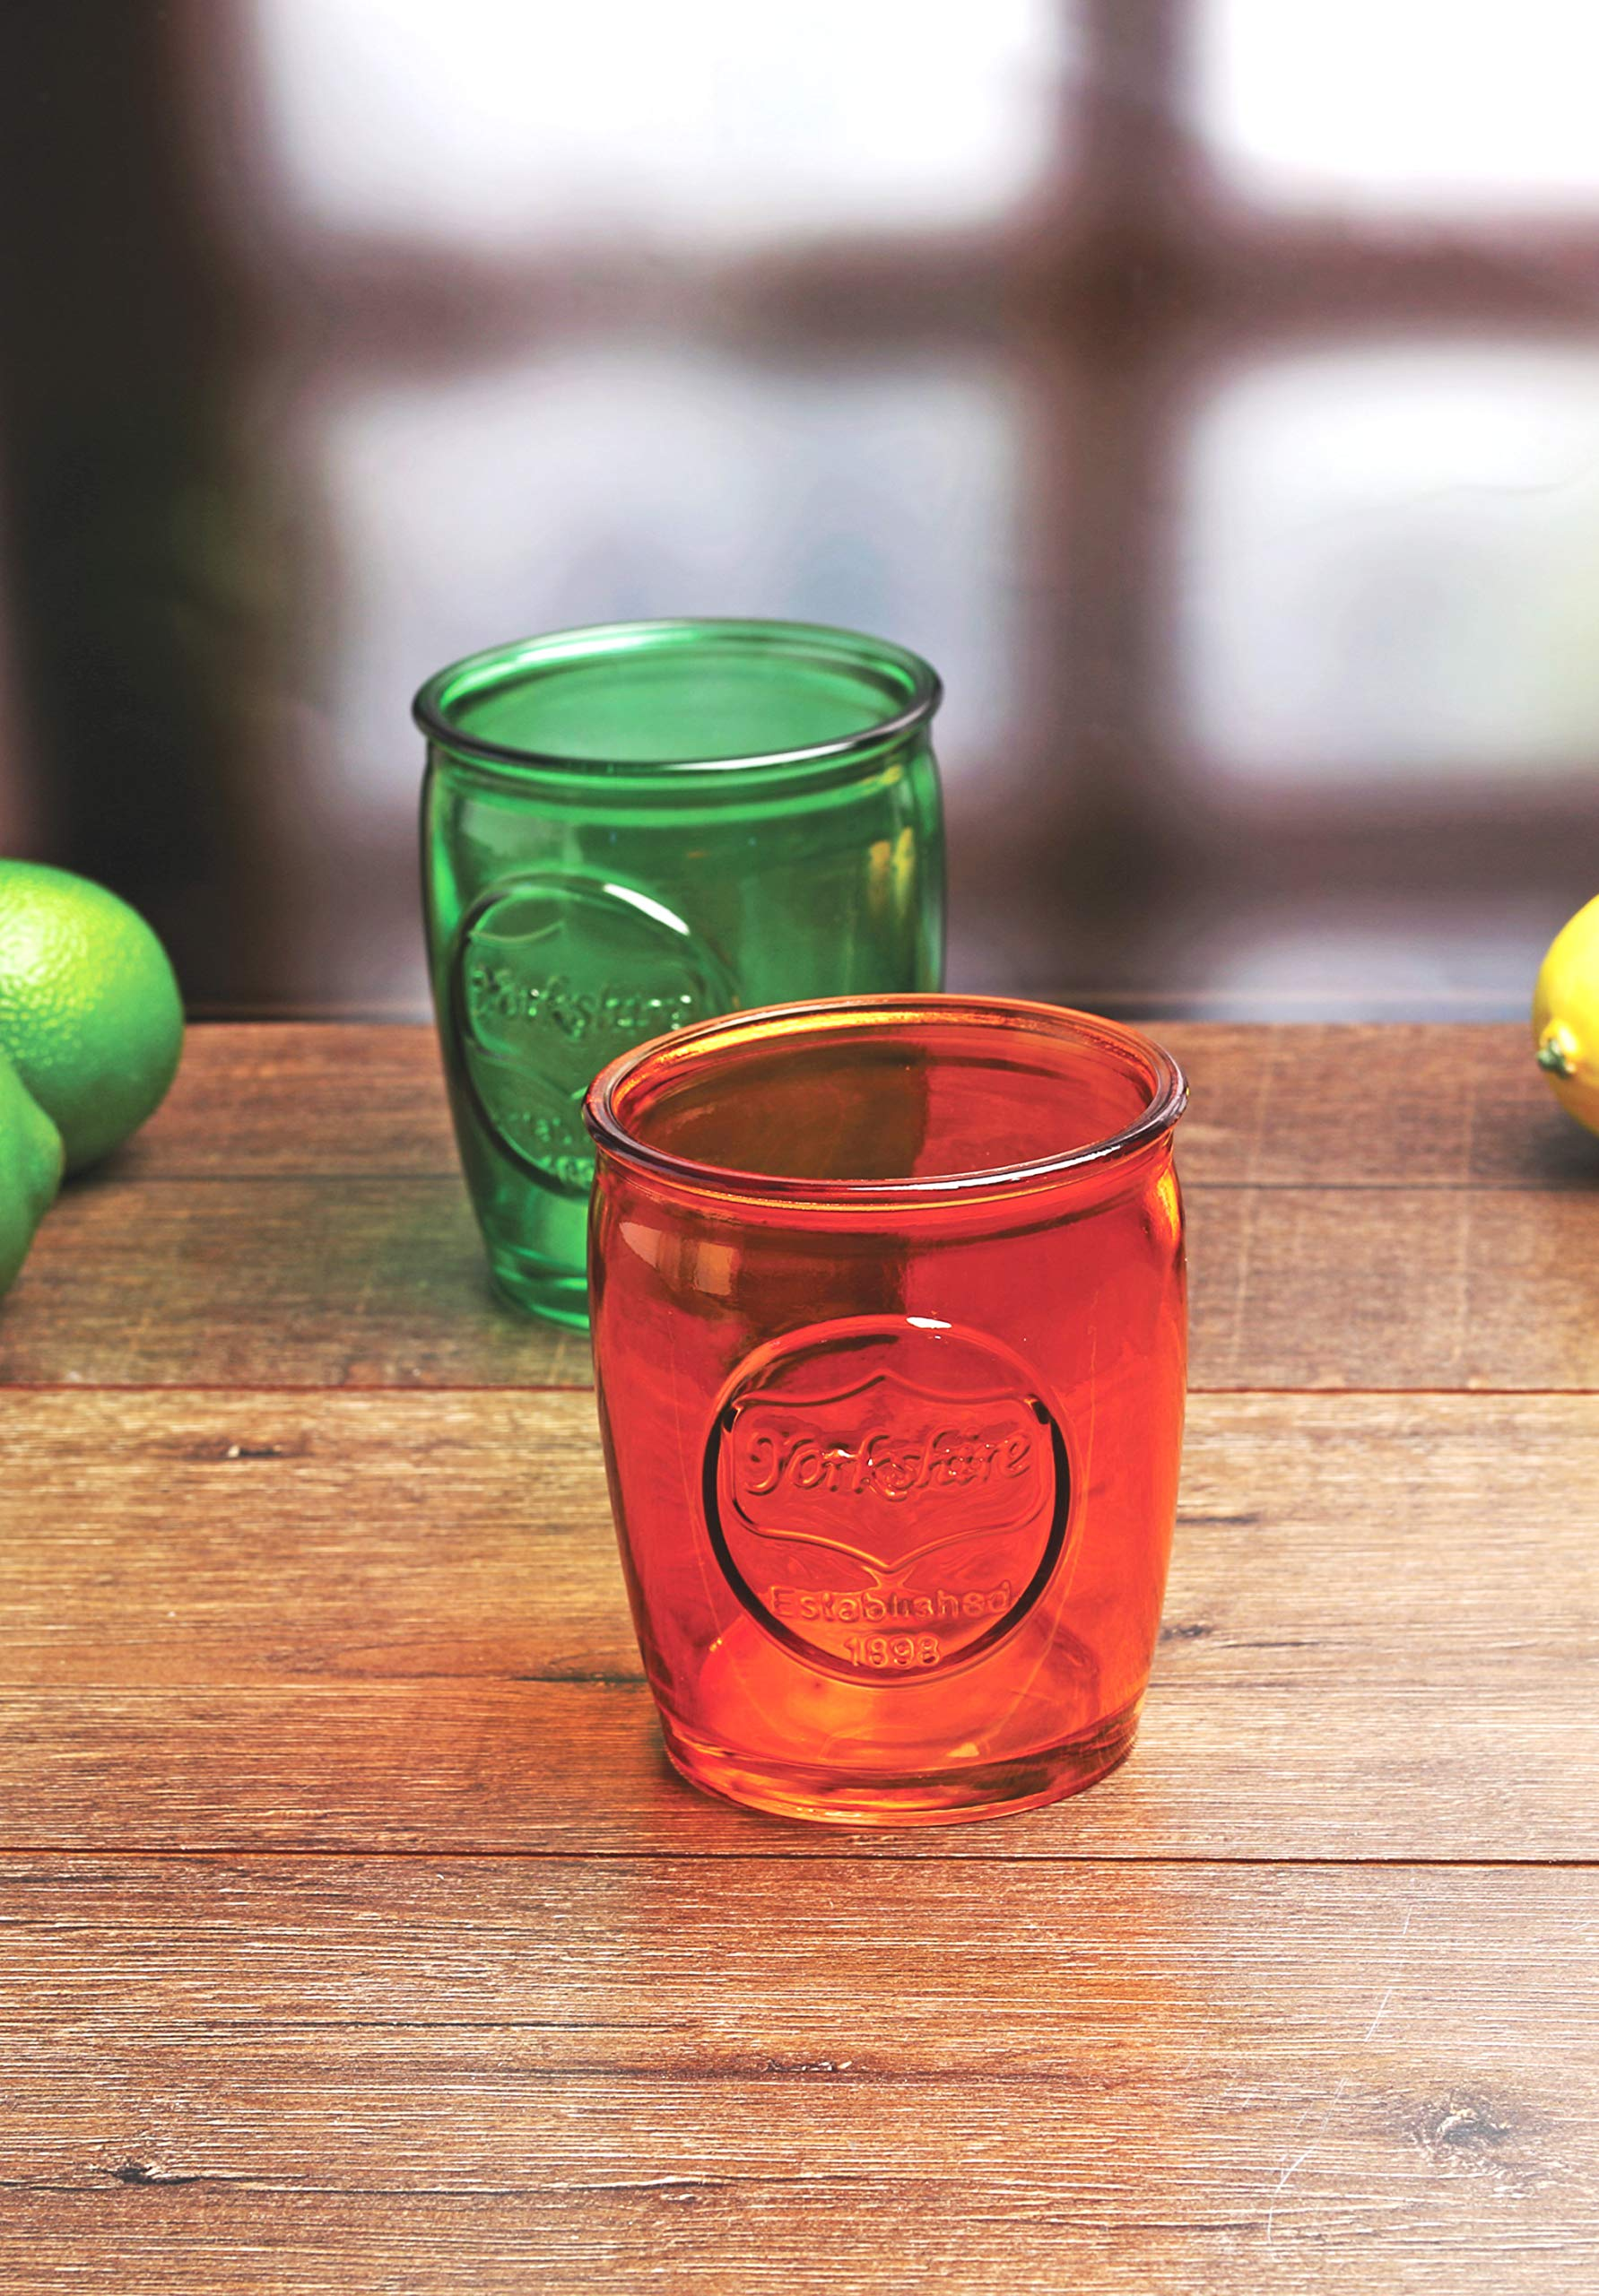 Circleware Yorkshire Heavy Base Whiskey Glasses 4-Piece, Party Entertainment Dining Beverage Drinking Glassware Cups for…